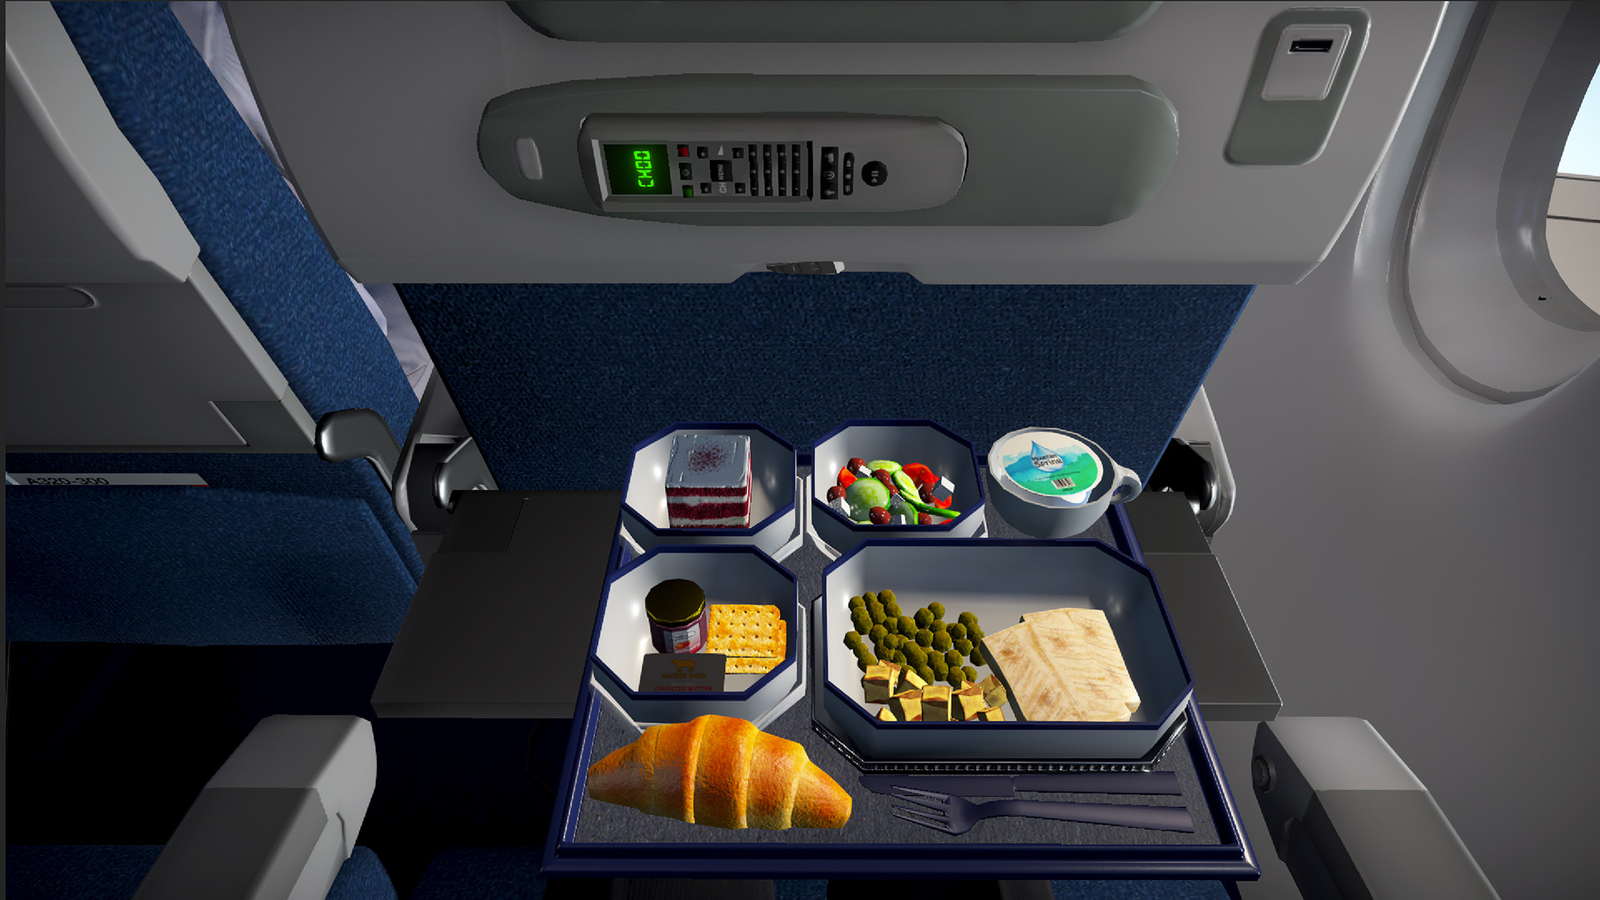 It turns out airplane food can get even less appealing.